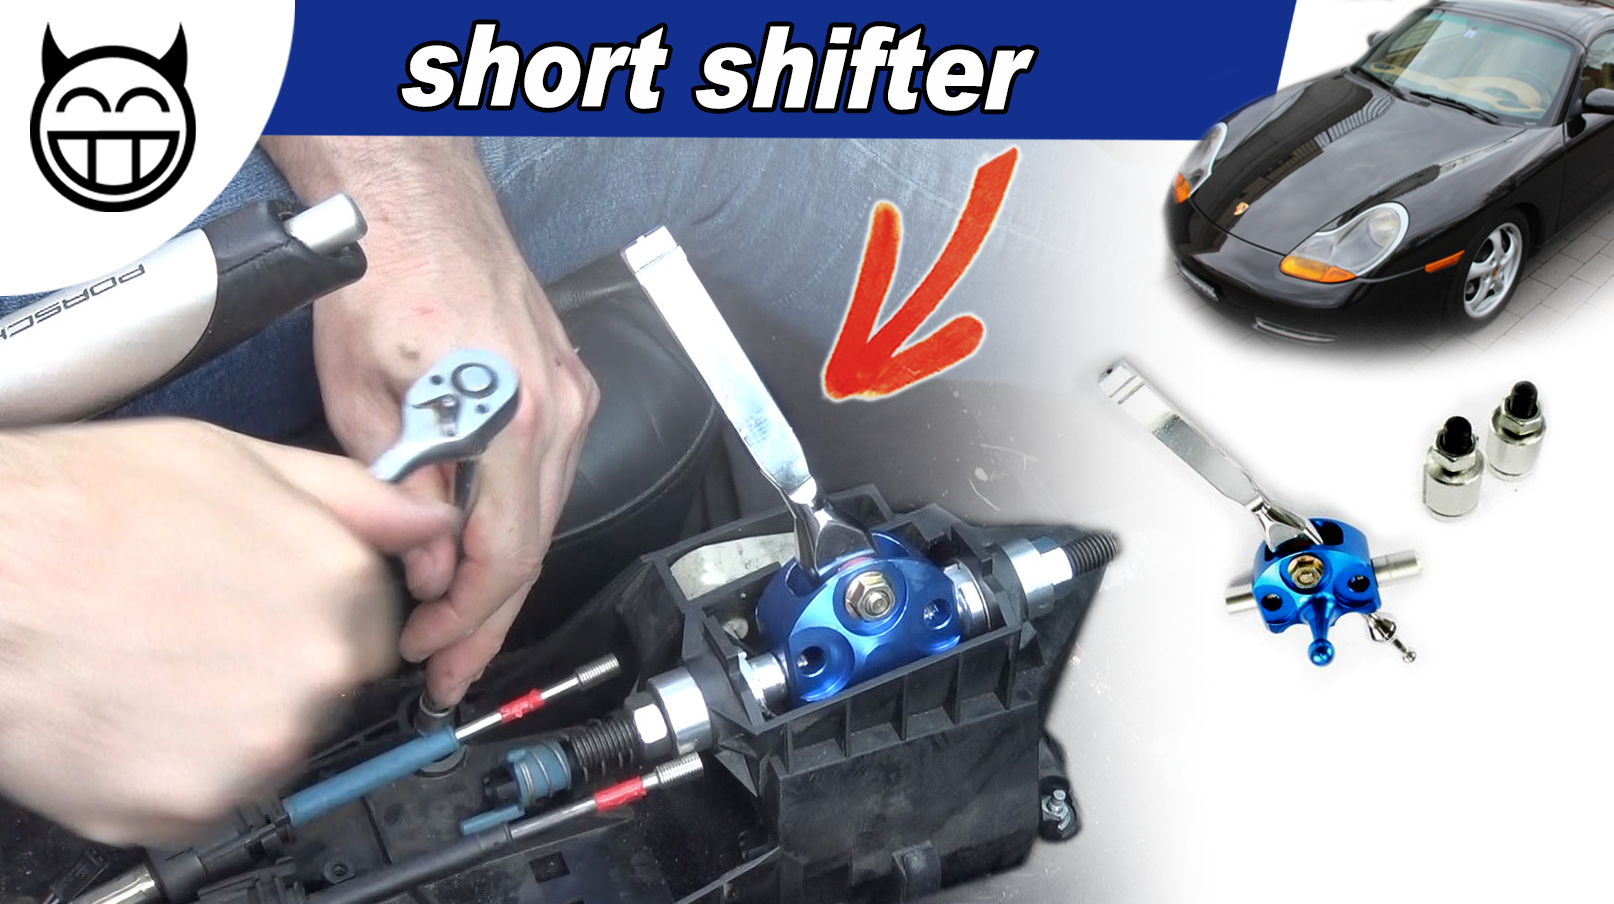 Boxster Levier court - Short shifter